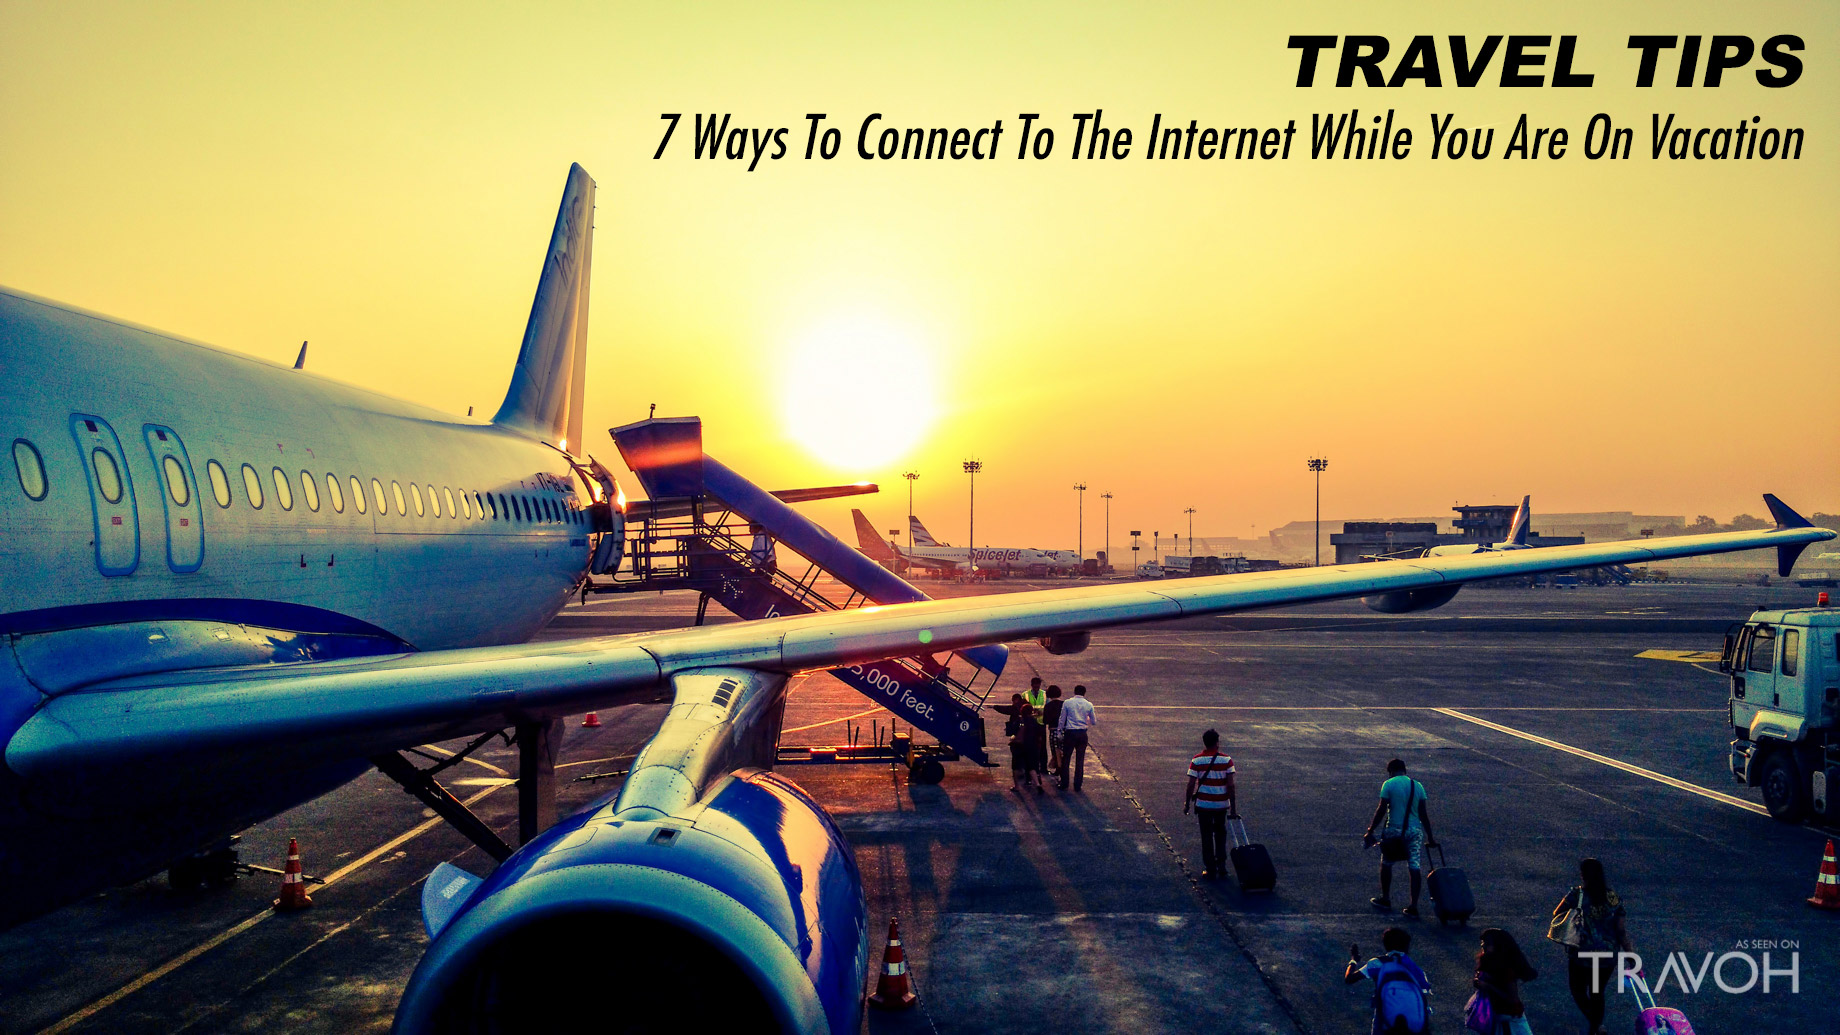 Travel Tips - 7 Ways To Connect To The Internet While You Are On Vacation